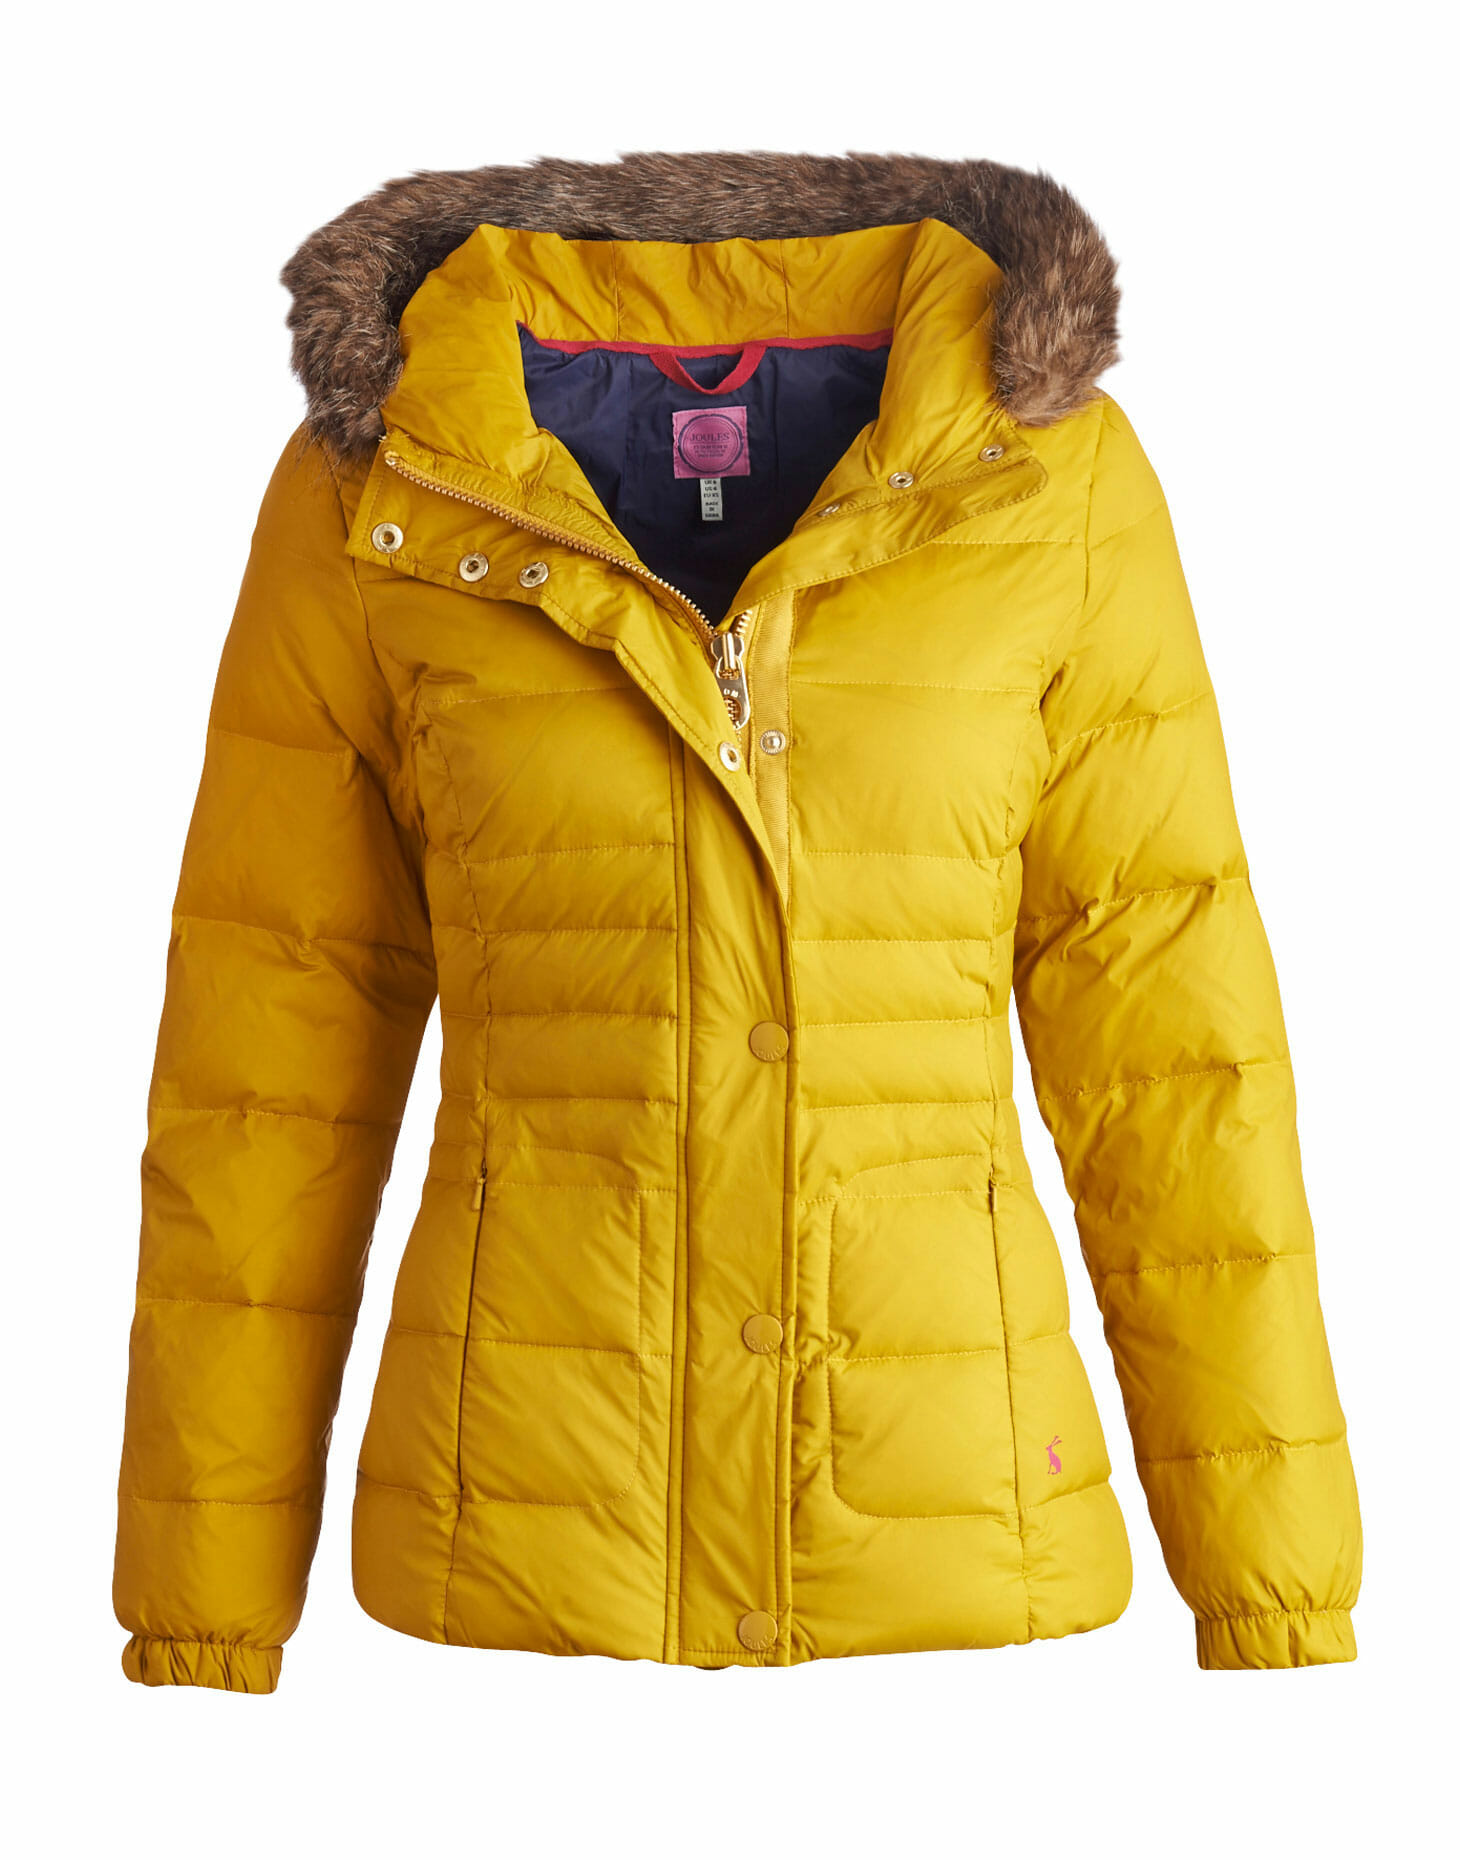 Glamorous Clothing Of Modern Casual Jackets - Minmaxst.com ...